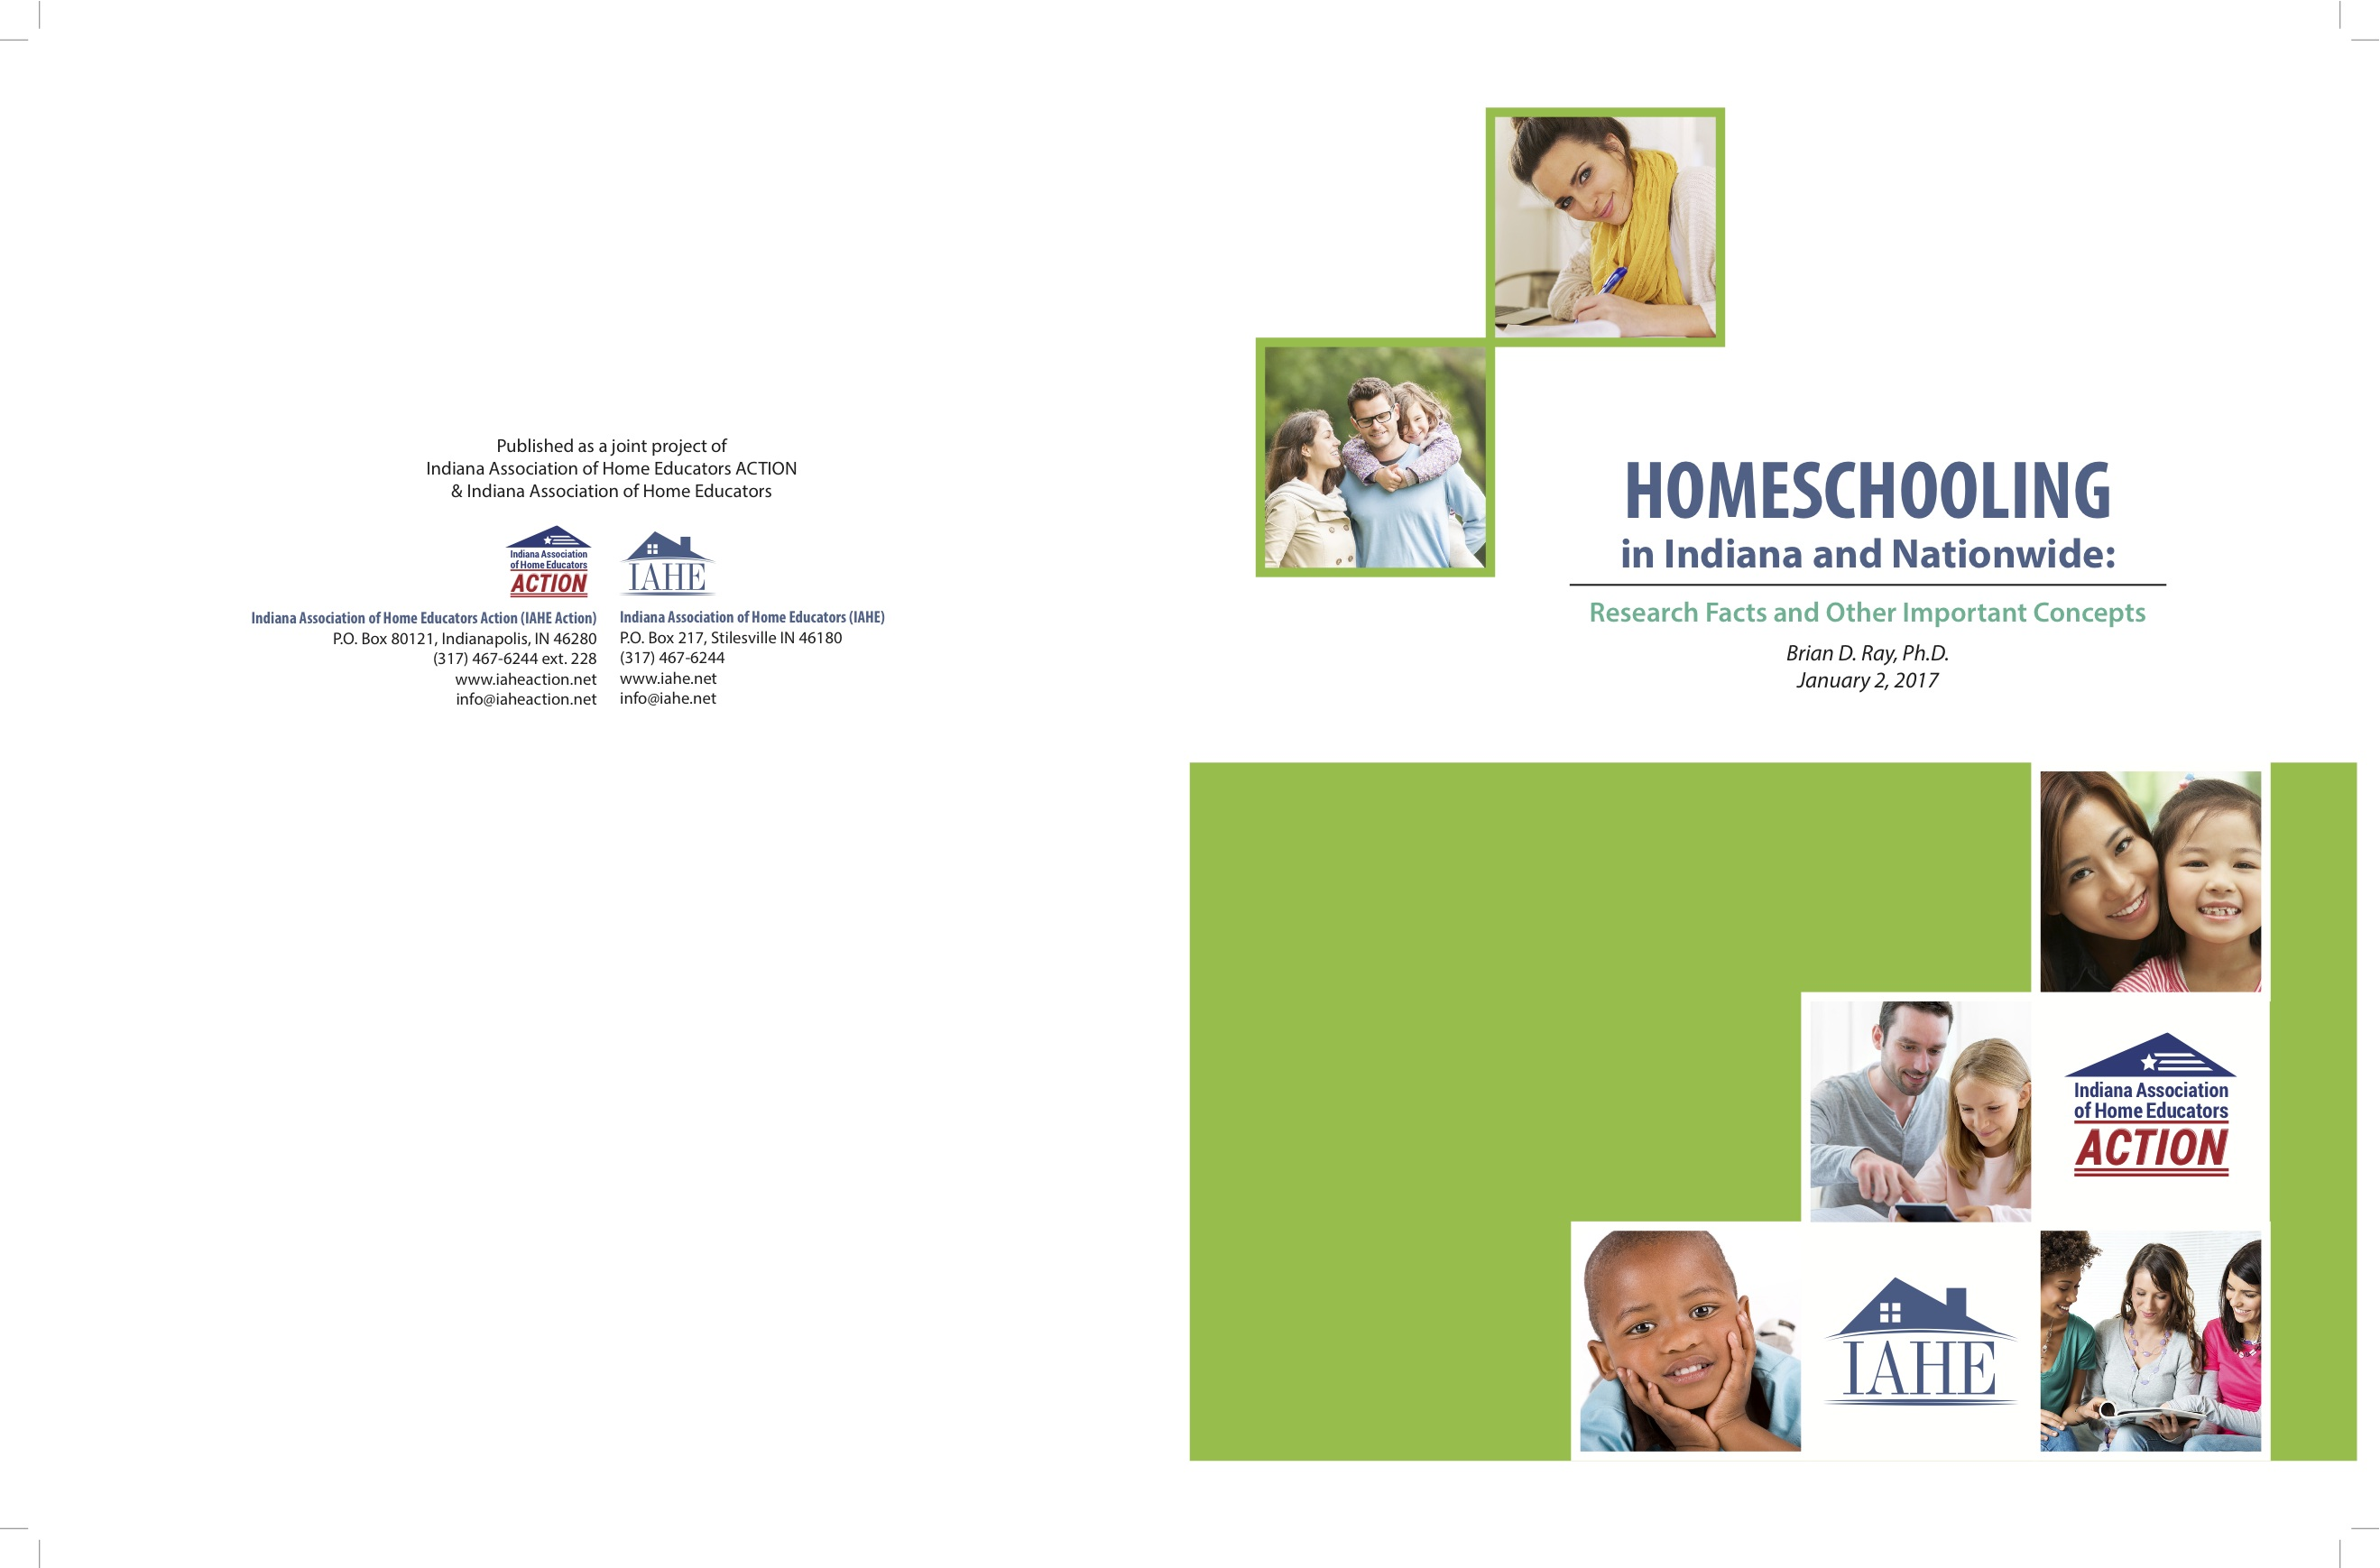 blog iahe action protecting homeschool dom for the next homeschooling in na nationwide 1 2 17 11x17